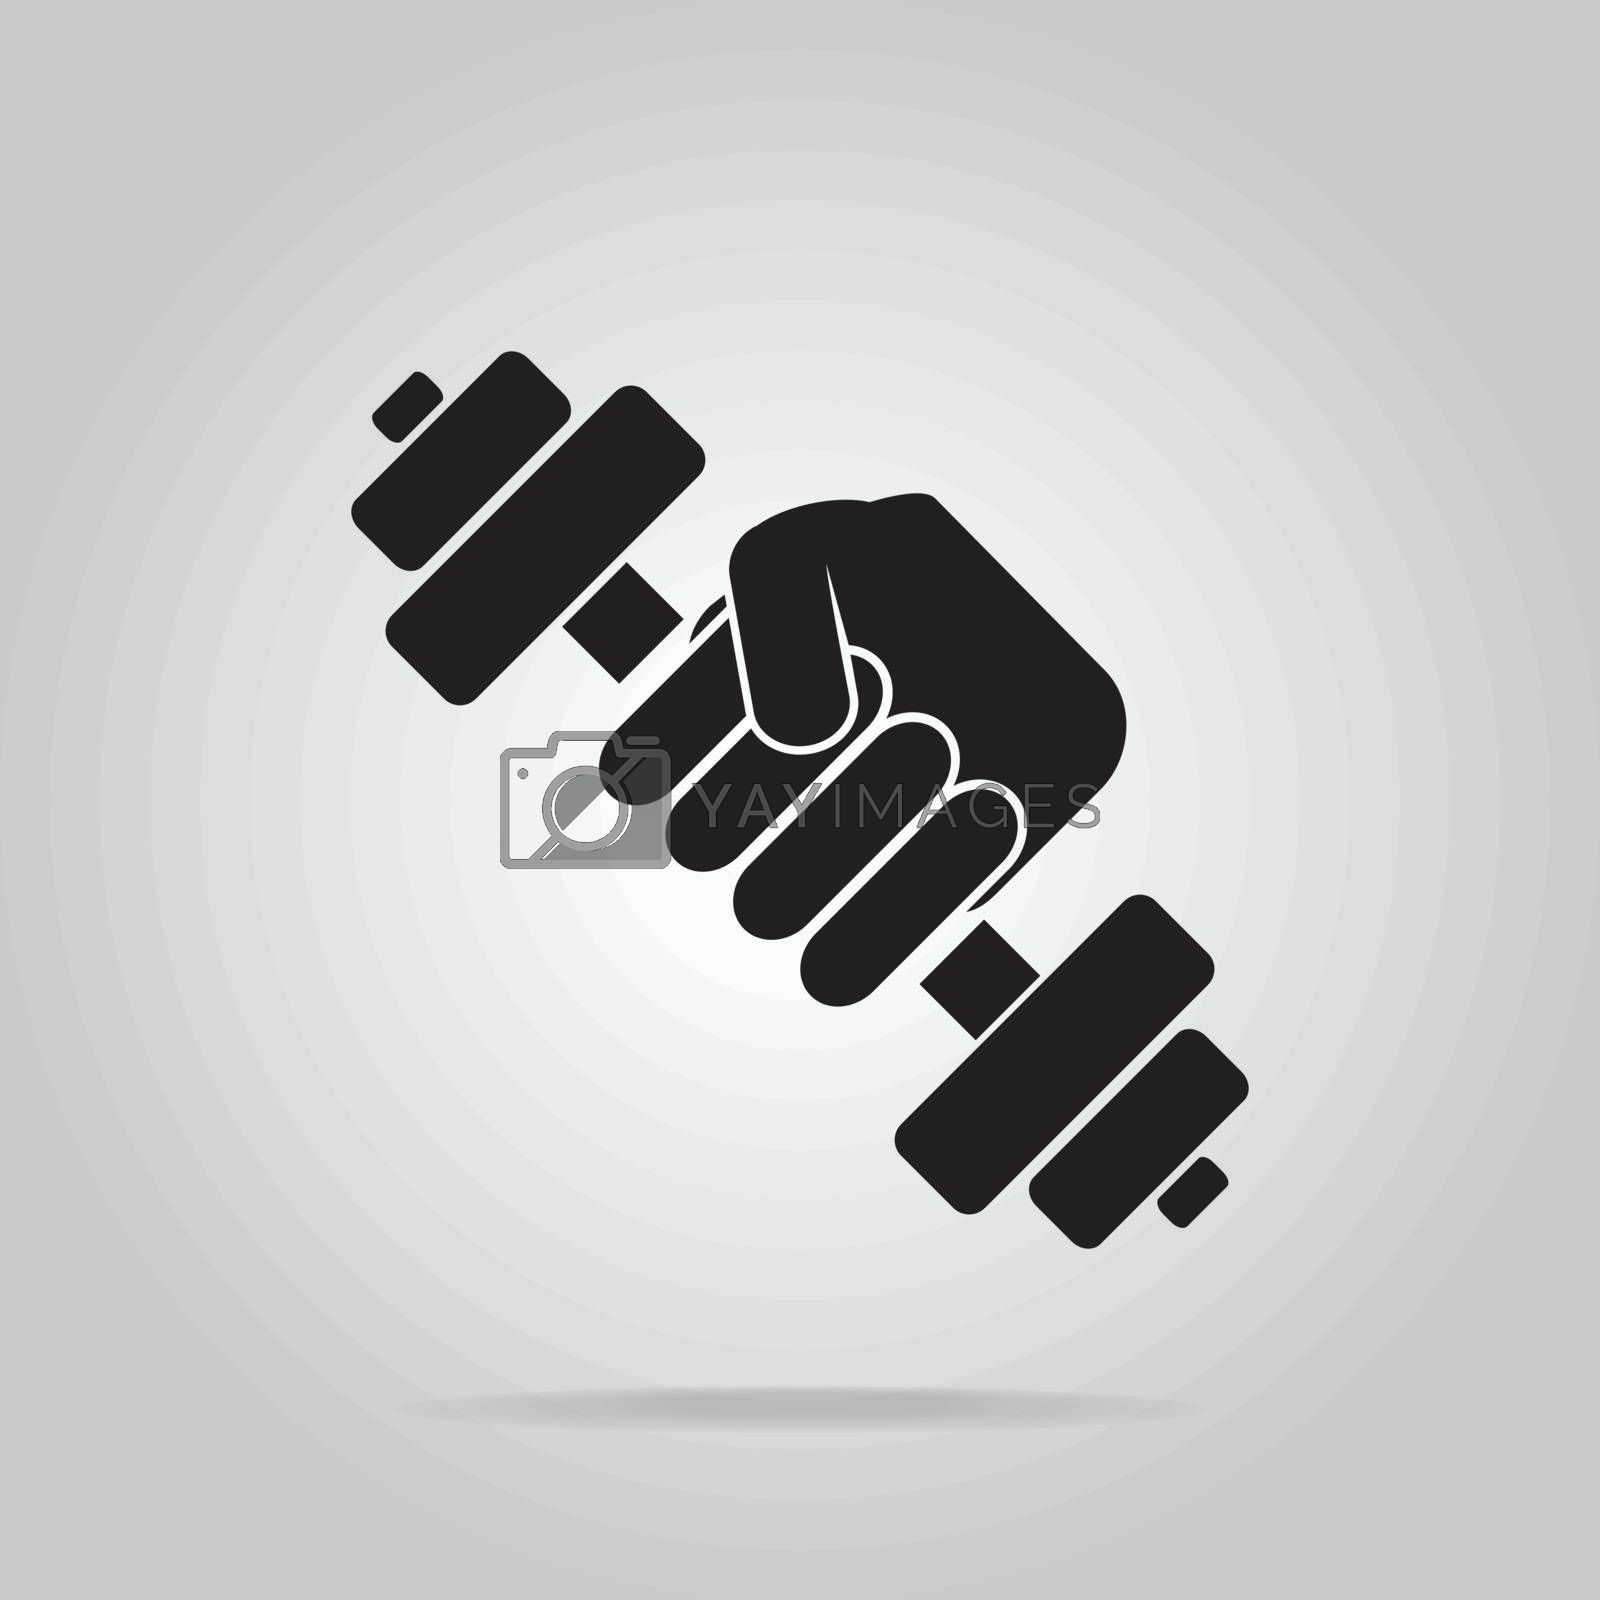 Hand holding with dumbbell icon